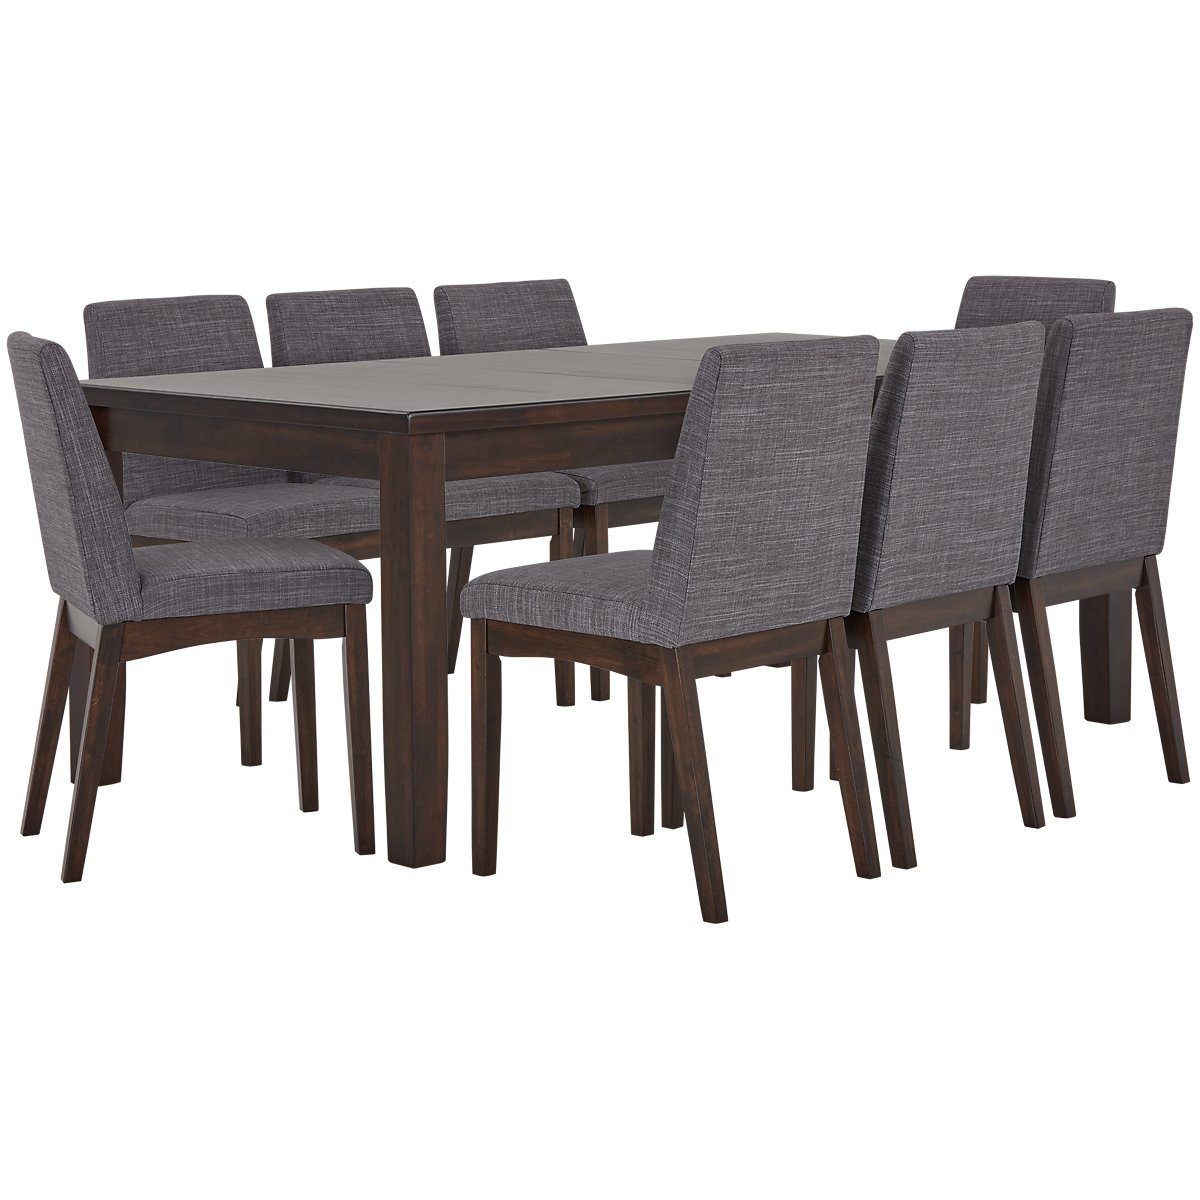 Hayden Dark Gray Wood Table & 4 Upholstered Chairs